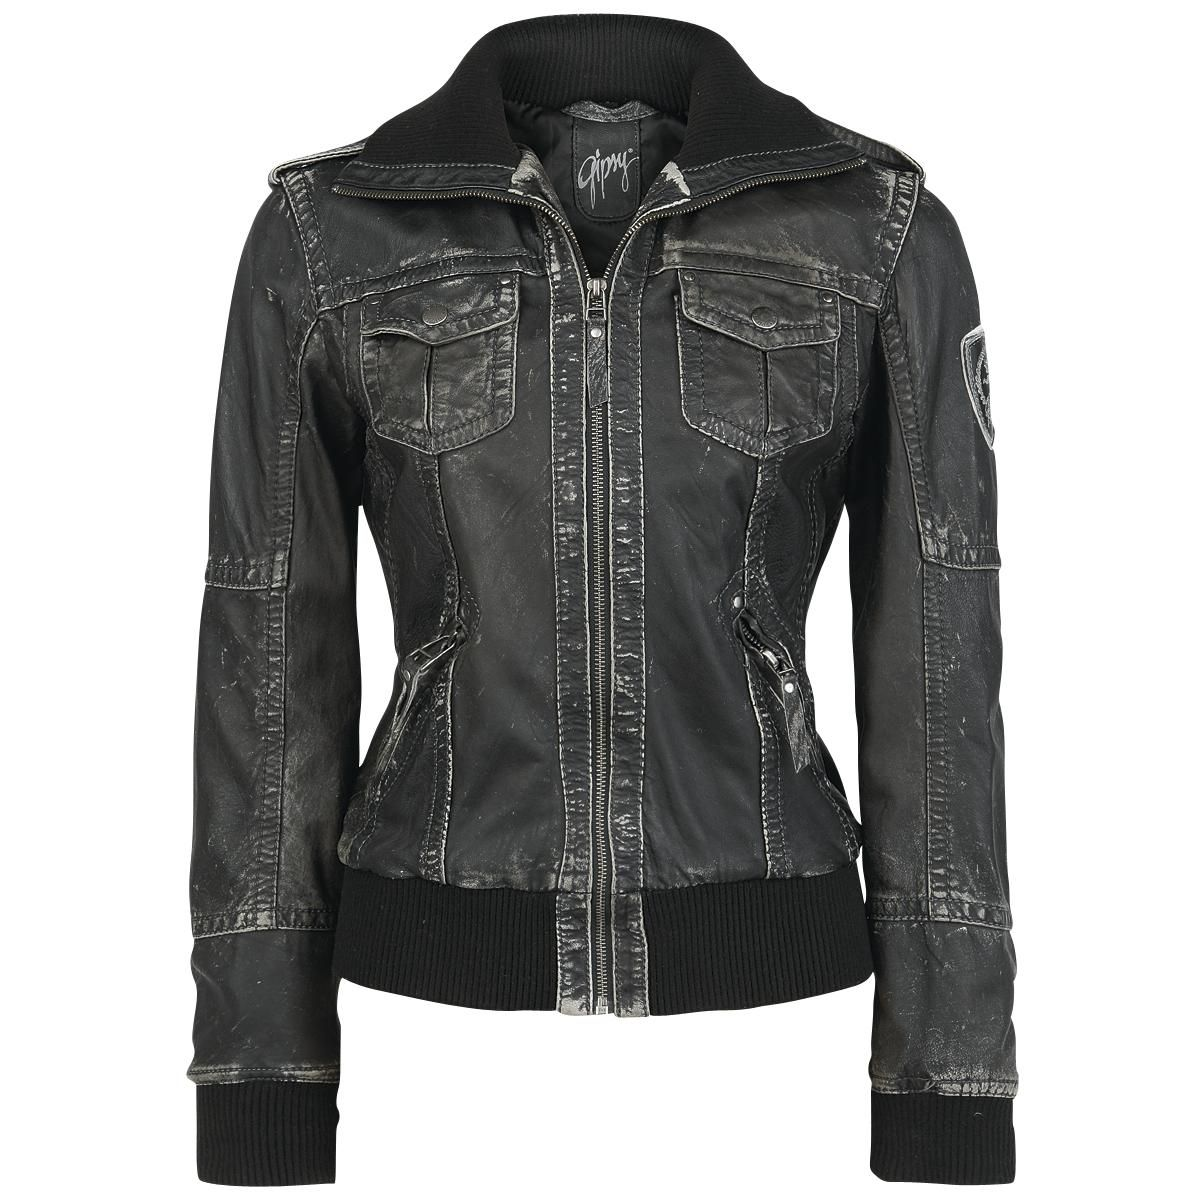 Short jacket made of lambskin leather in Vintage-style:  - 2 zipped slip-in pockets - 2 chest pockets with poppers - corduroy cuffs and collar made of 95% polyacrylics and 5% elasthane - lining: 100%...